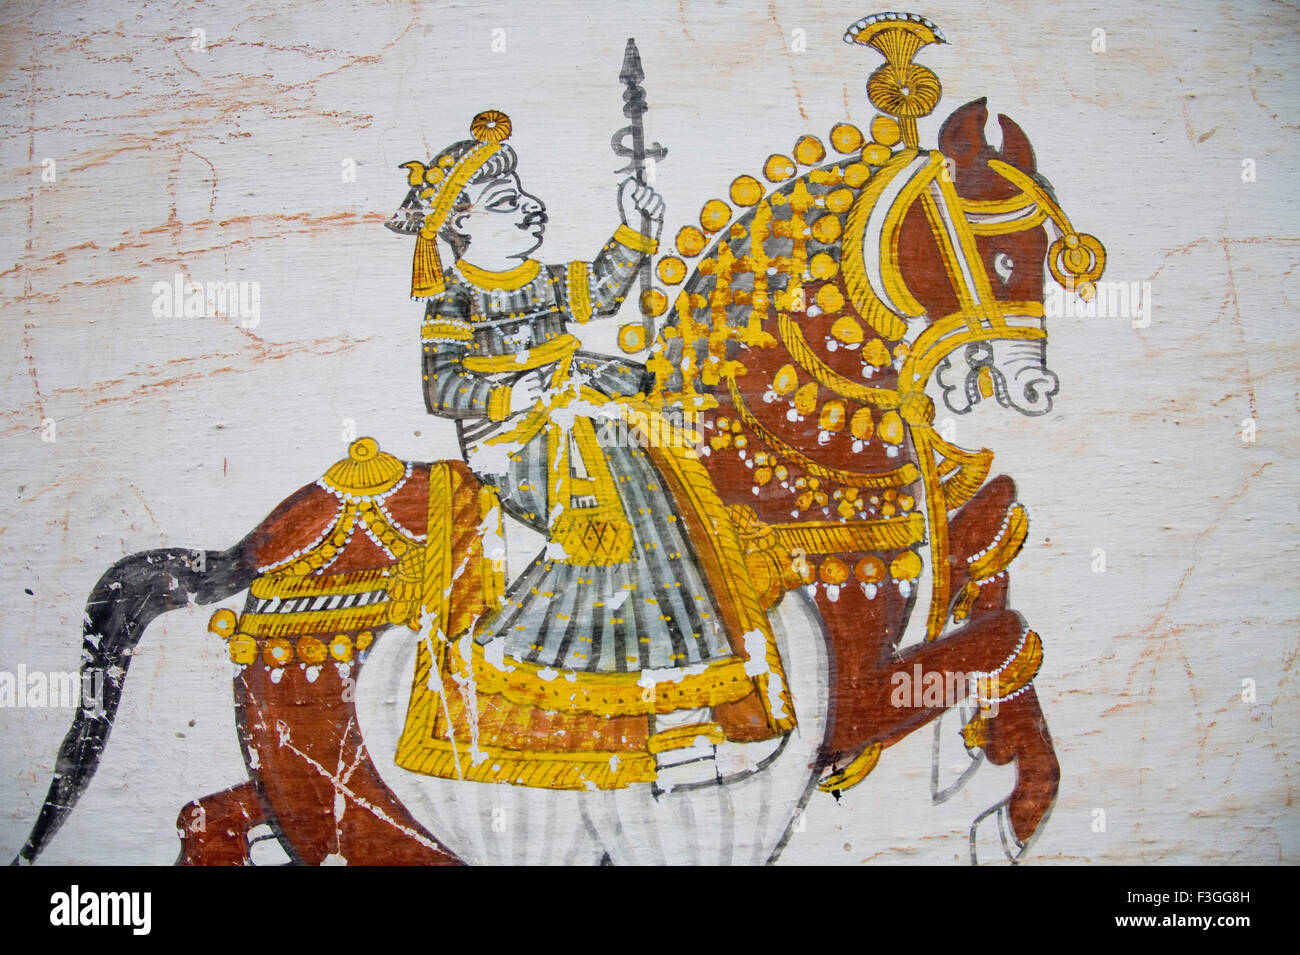 King Riding Horse High Resolution Stock Photography And Images Alamy